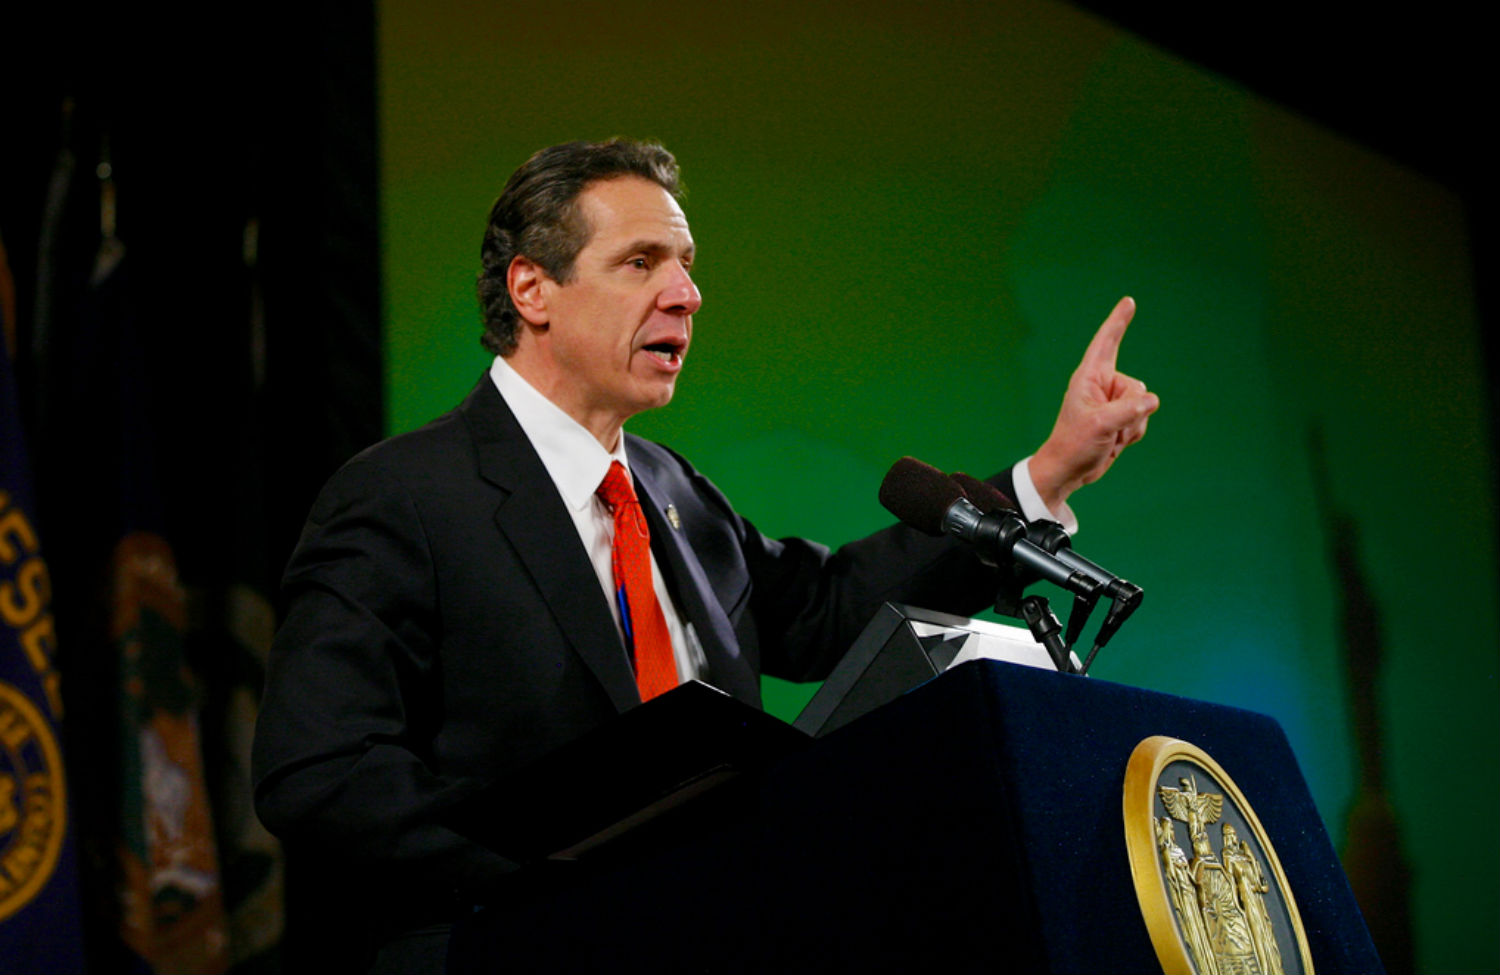 Cuomo's-Medical-Marijuana-Proposal-Dodges-the-Real-Problems-with-Pot-Criminalization